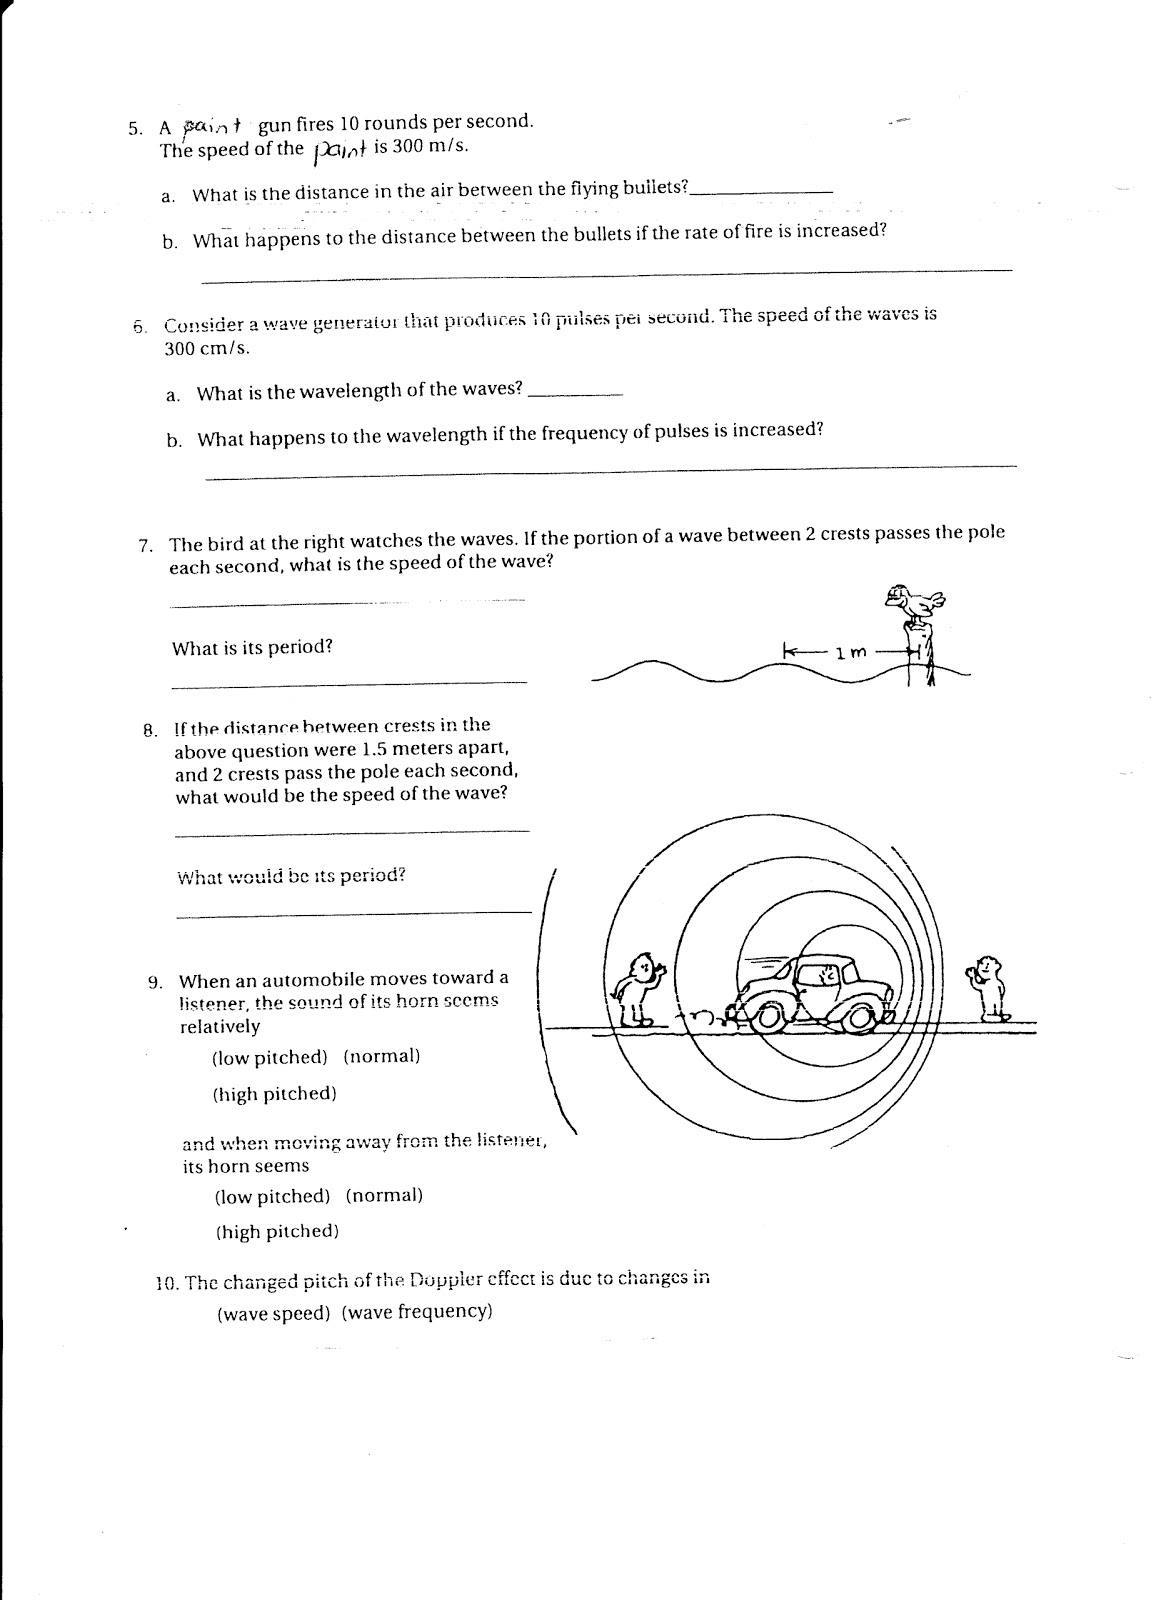 Worksheets Doppler Effect Worksheet physics due wed feb 16 waves and vibrations worksheet worksheet